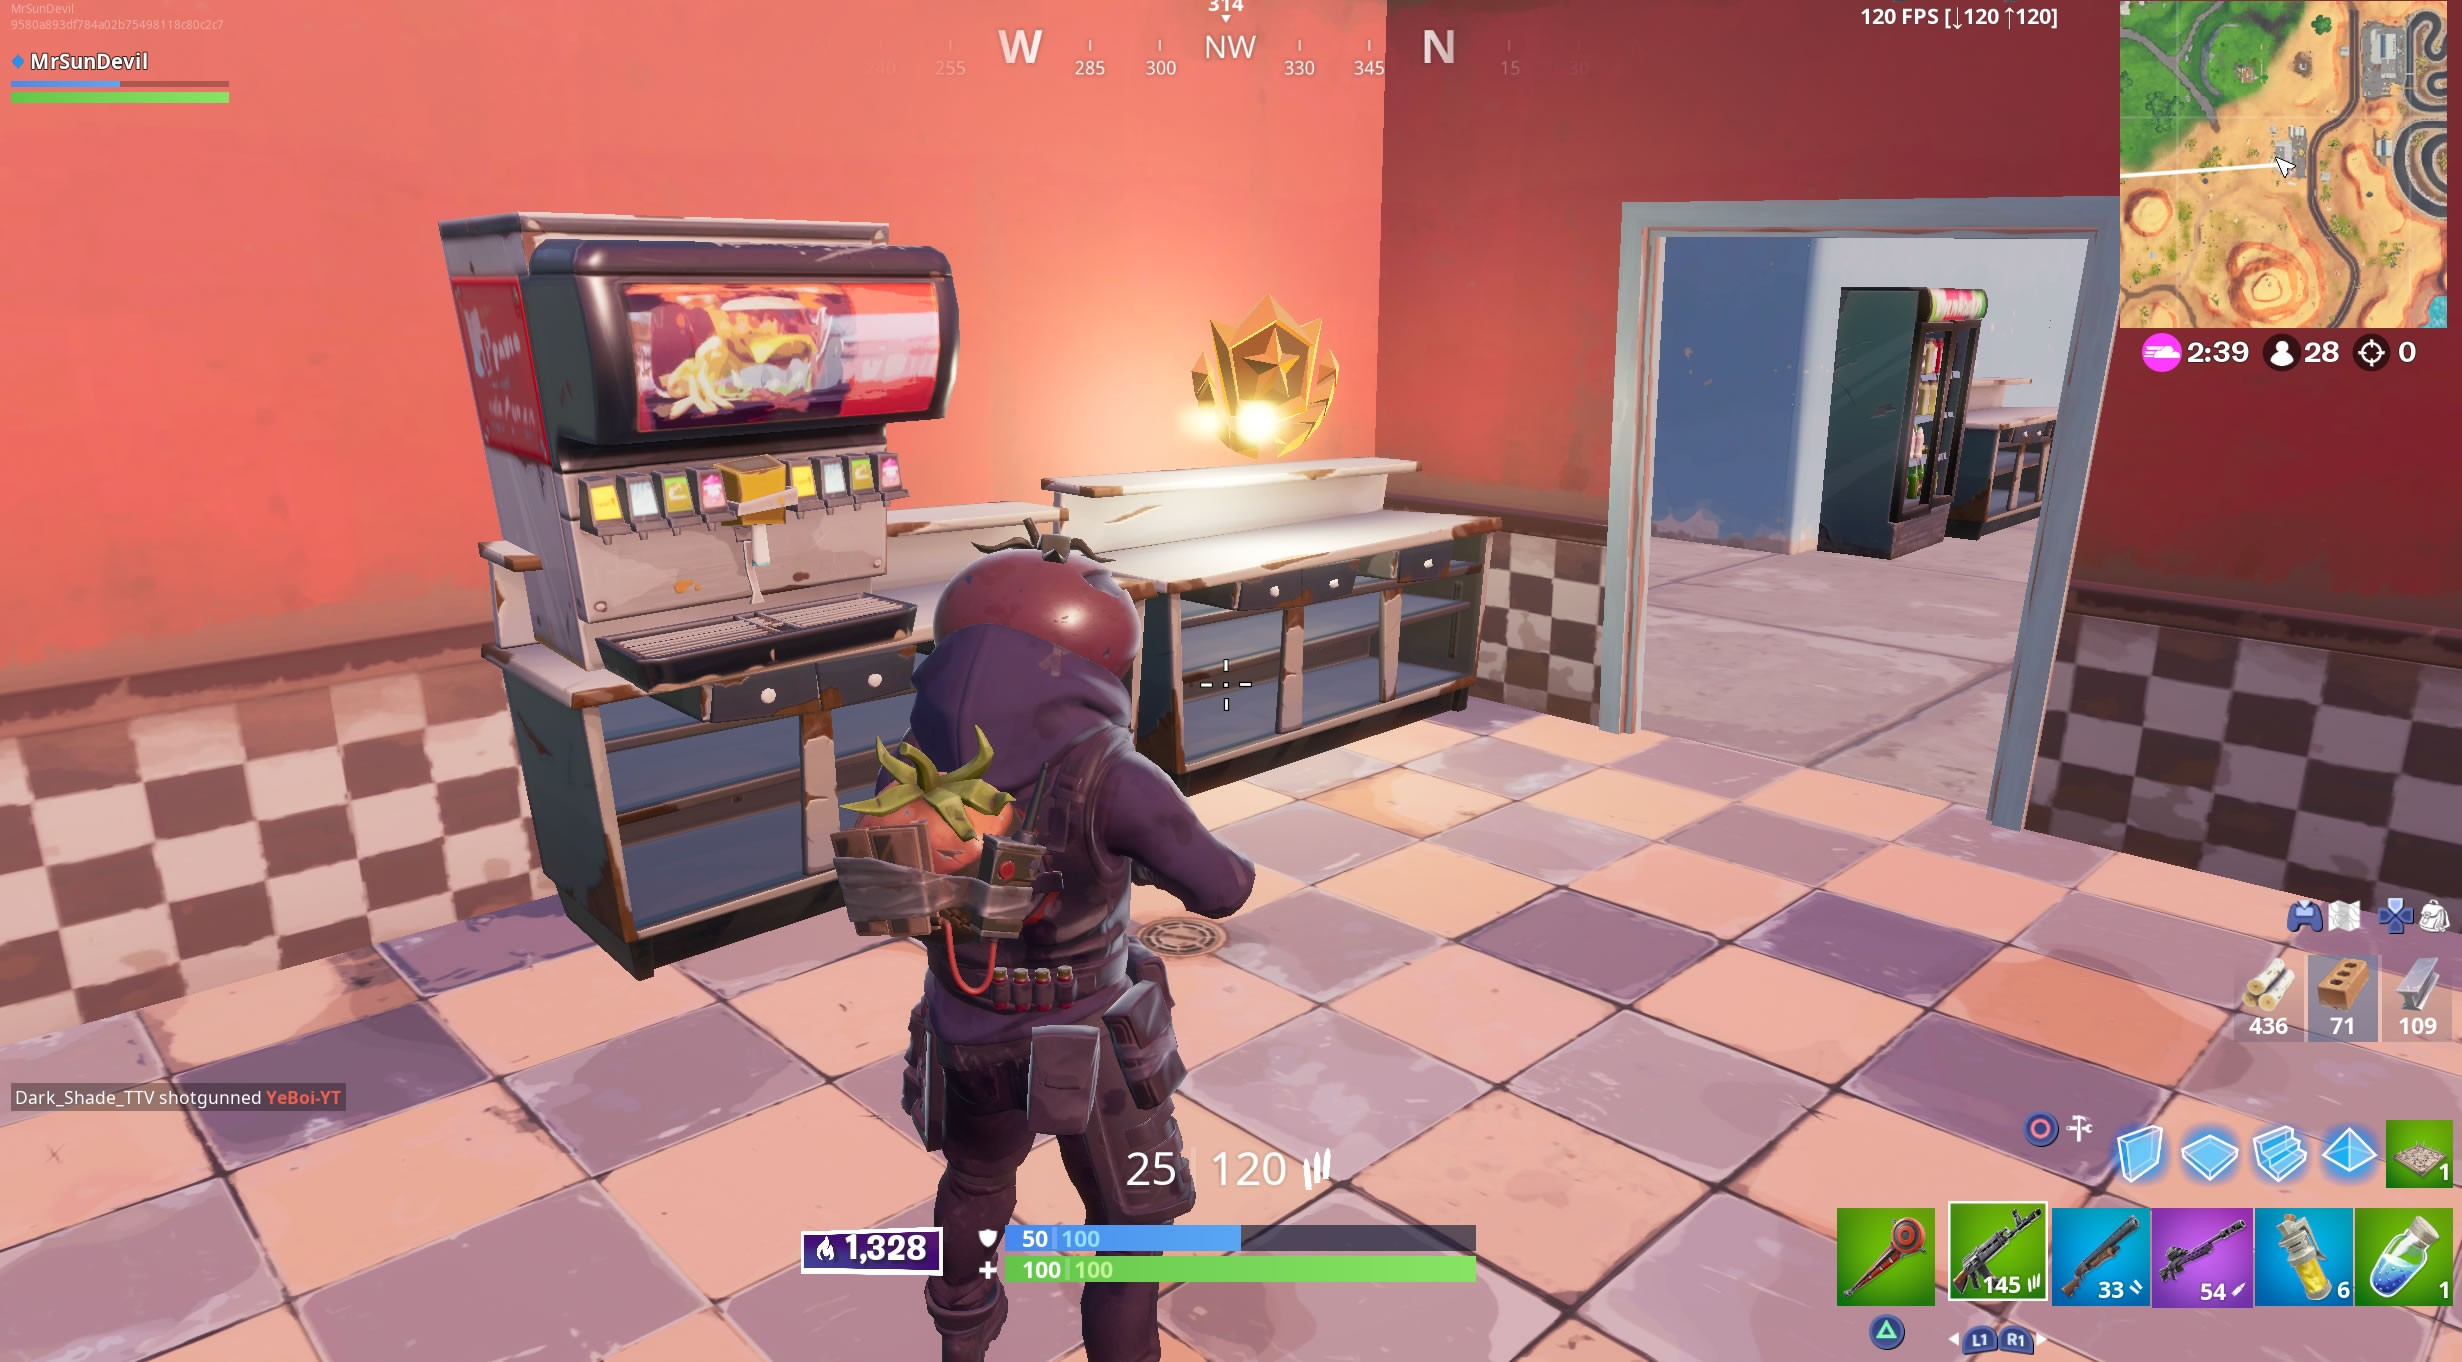 Fortnite Season 10 Week 3 Secret Battle Star Location - Softeez Ice Cream Shop